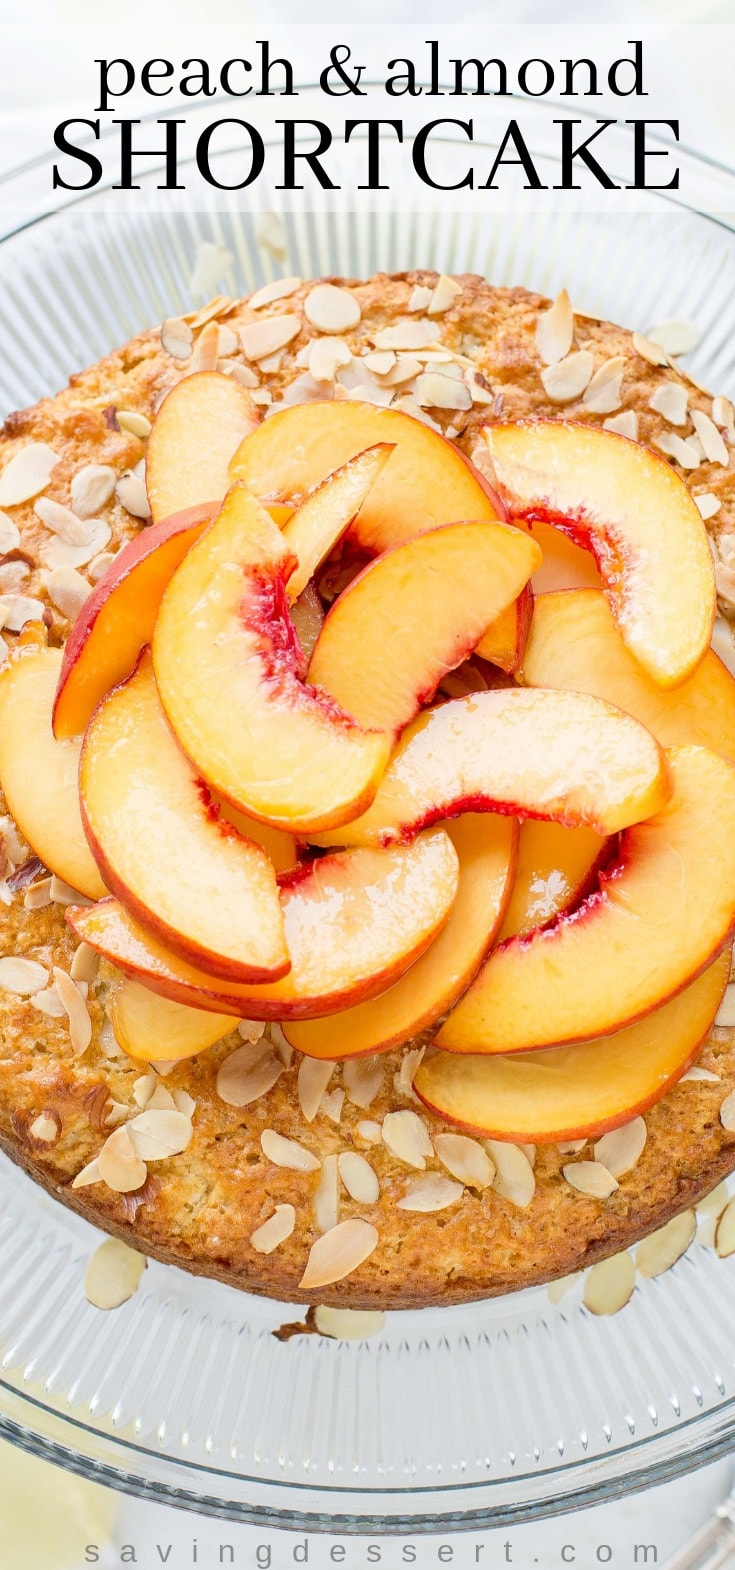 A peach and almond shortcake topped with fresh sliced peaches